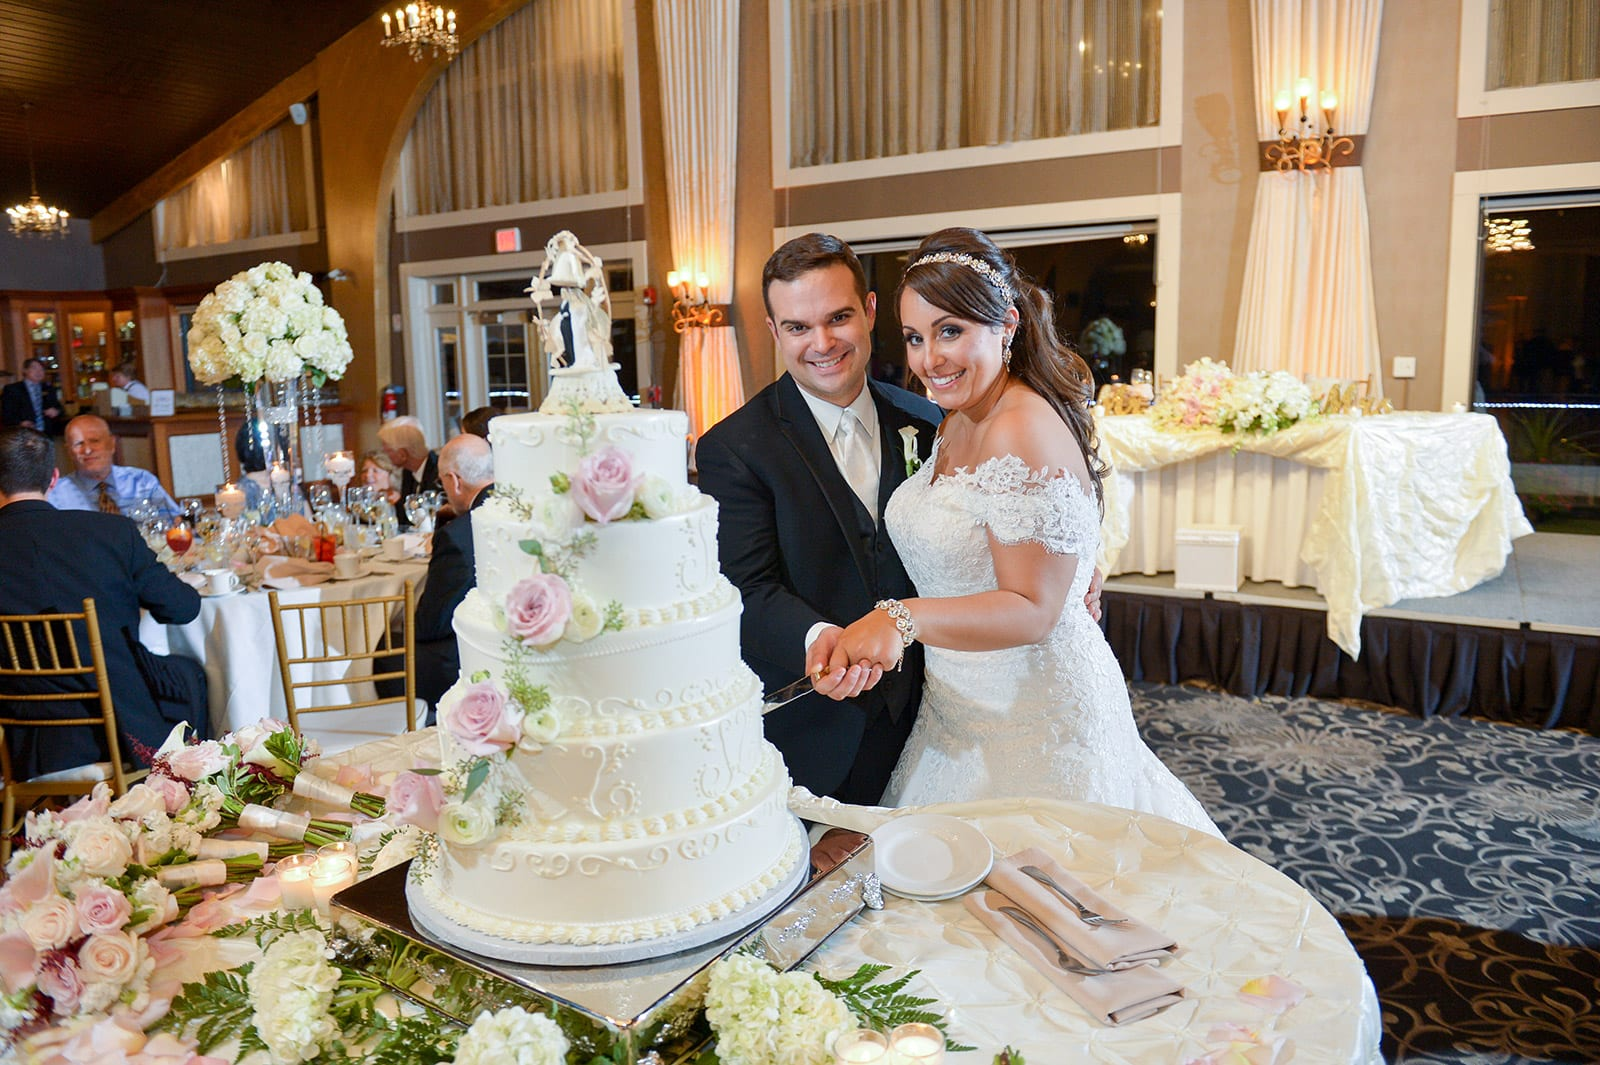 A couple smiles for the camera while cutting the cake in the Harborview Ballroom